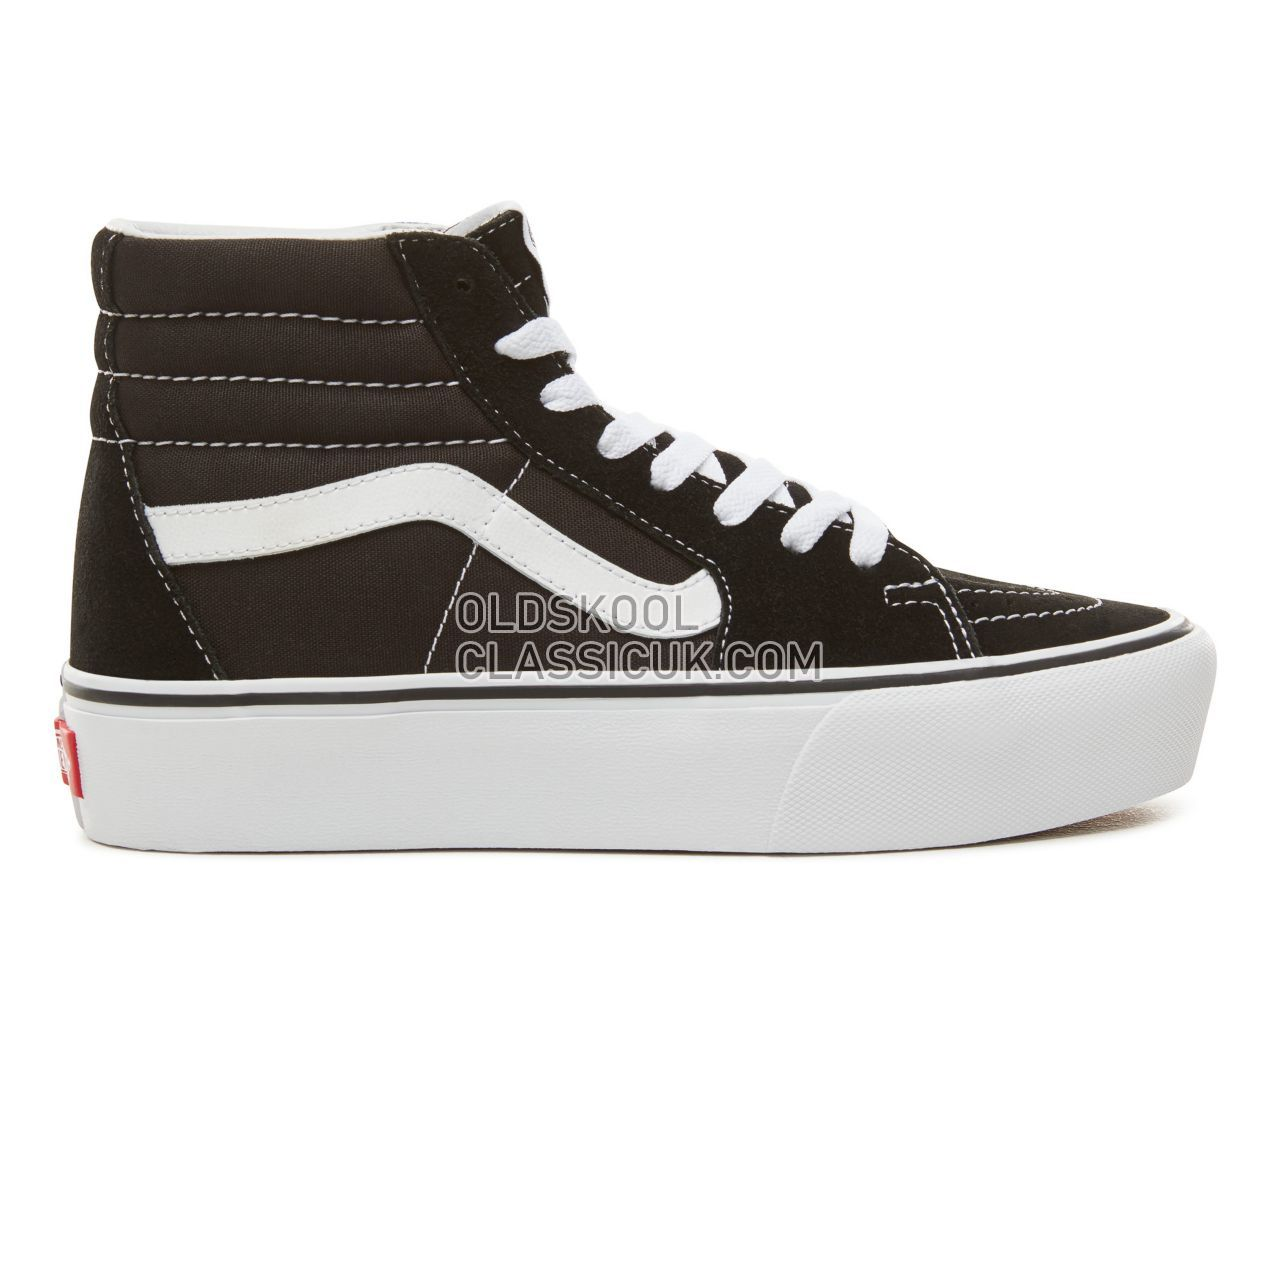 Vans Suede  Sk8-Hi Platform 2.0 Sneakers Womens Black/True White VN0A3TKN6BT Shoes